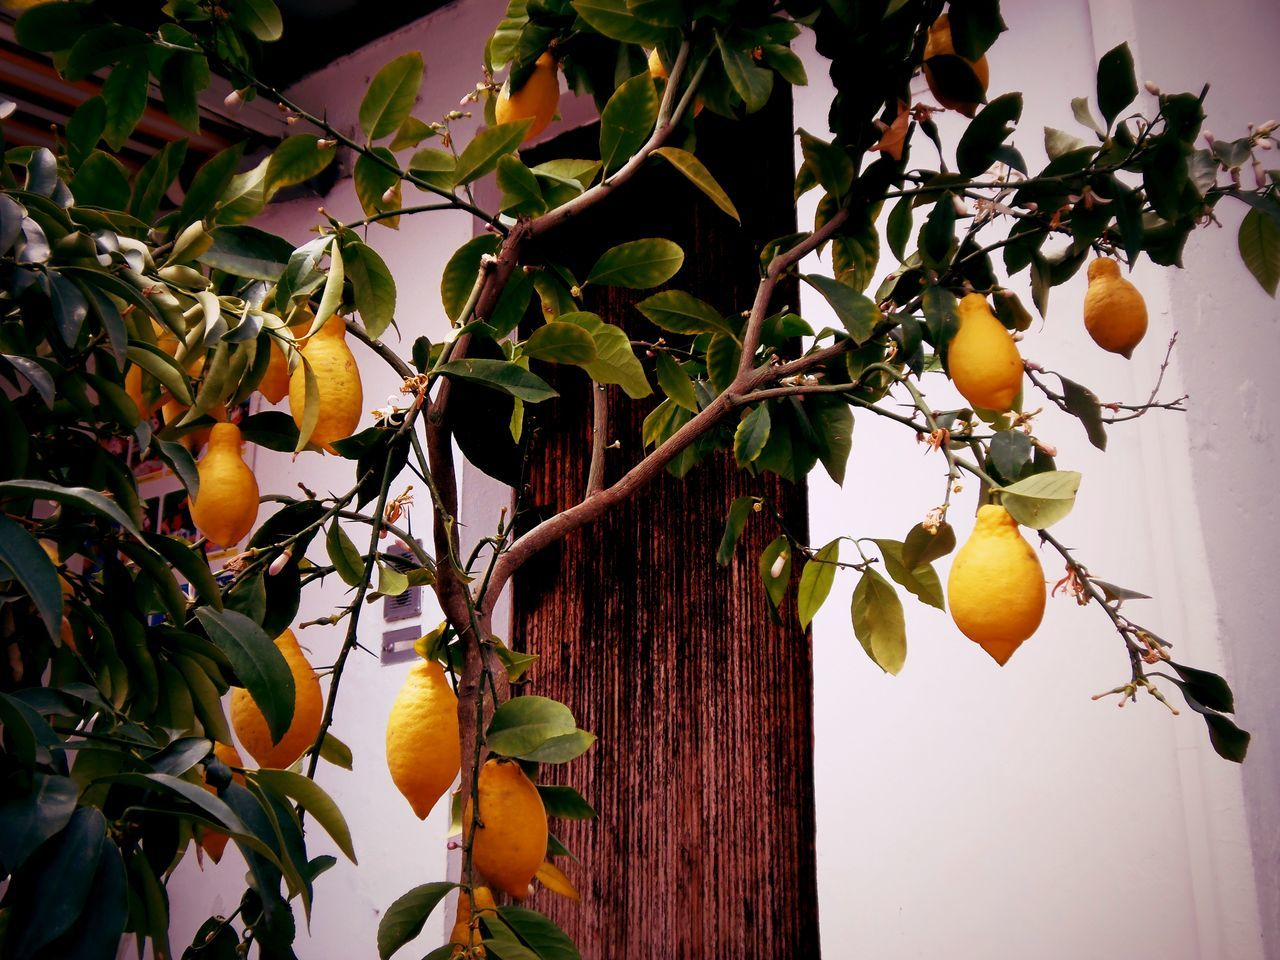 Agriculture Close-up Focus On Foreground Freshness Growth Limone Limone Sul Garda Vineyard Lemon Tree Lemons Lemon Grove Lemon Trees Limonesulgarda Lake Garda LakeGarda Italy❤️ Fruit Trees Fruit Tree Fruit Photography Fruits Summer Fruits Agriculture Photography Agricultural Lemontree Lemon